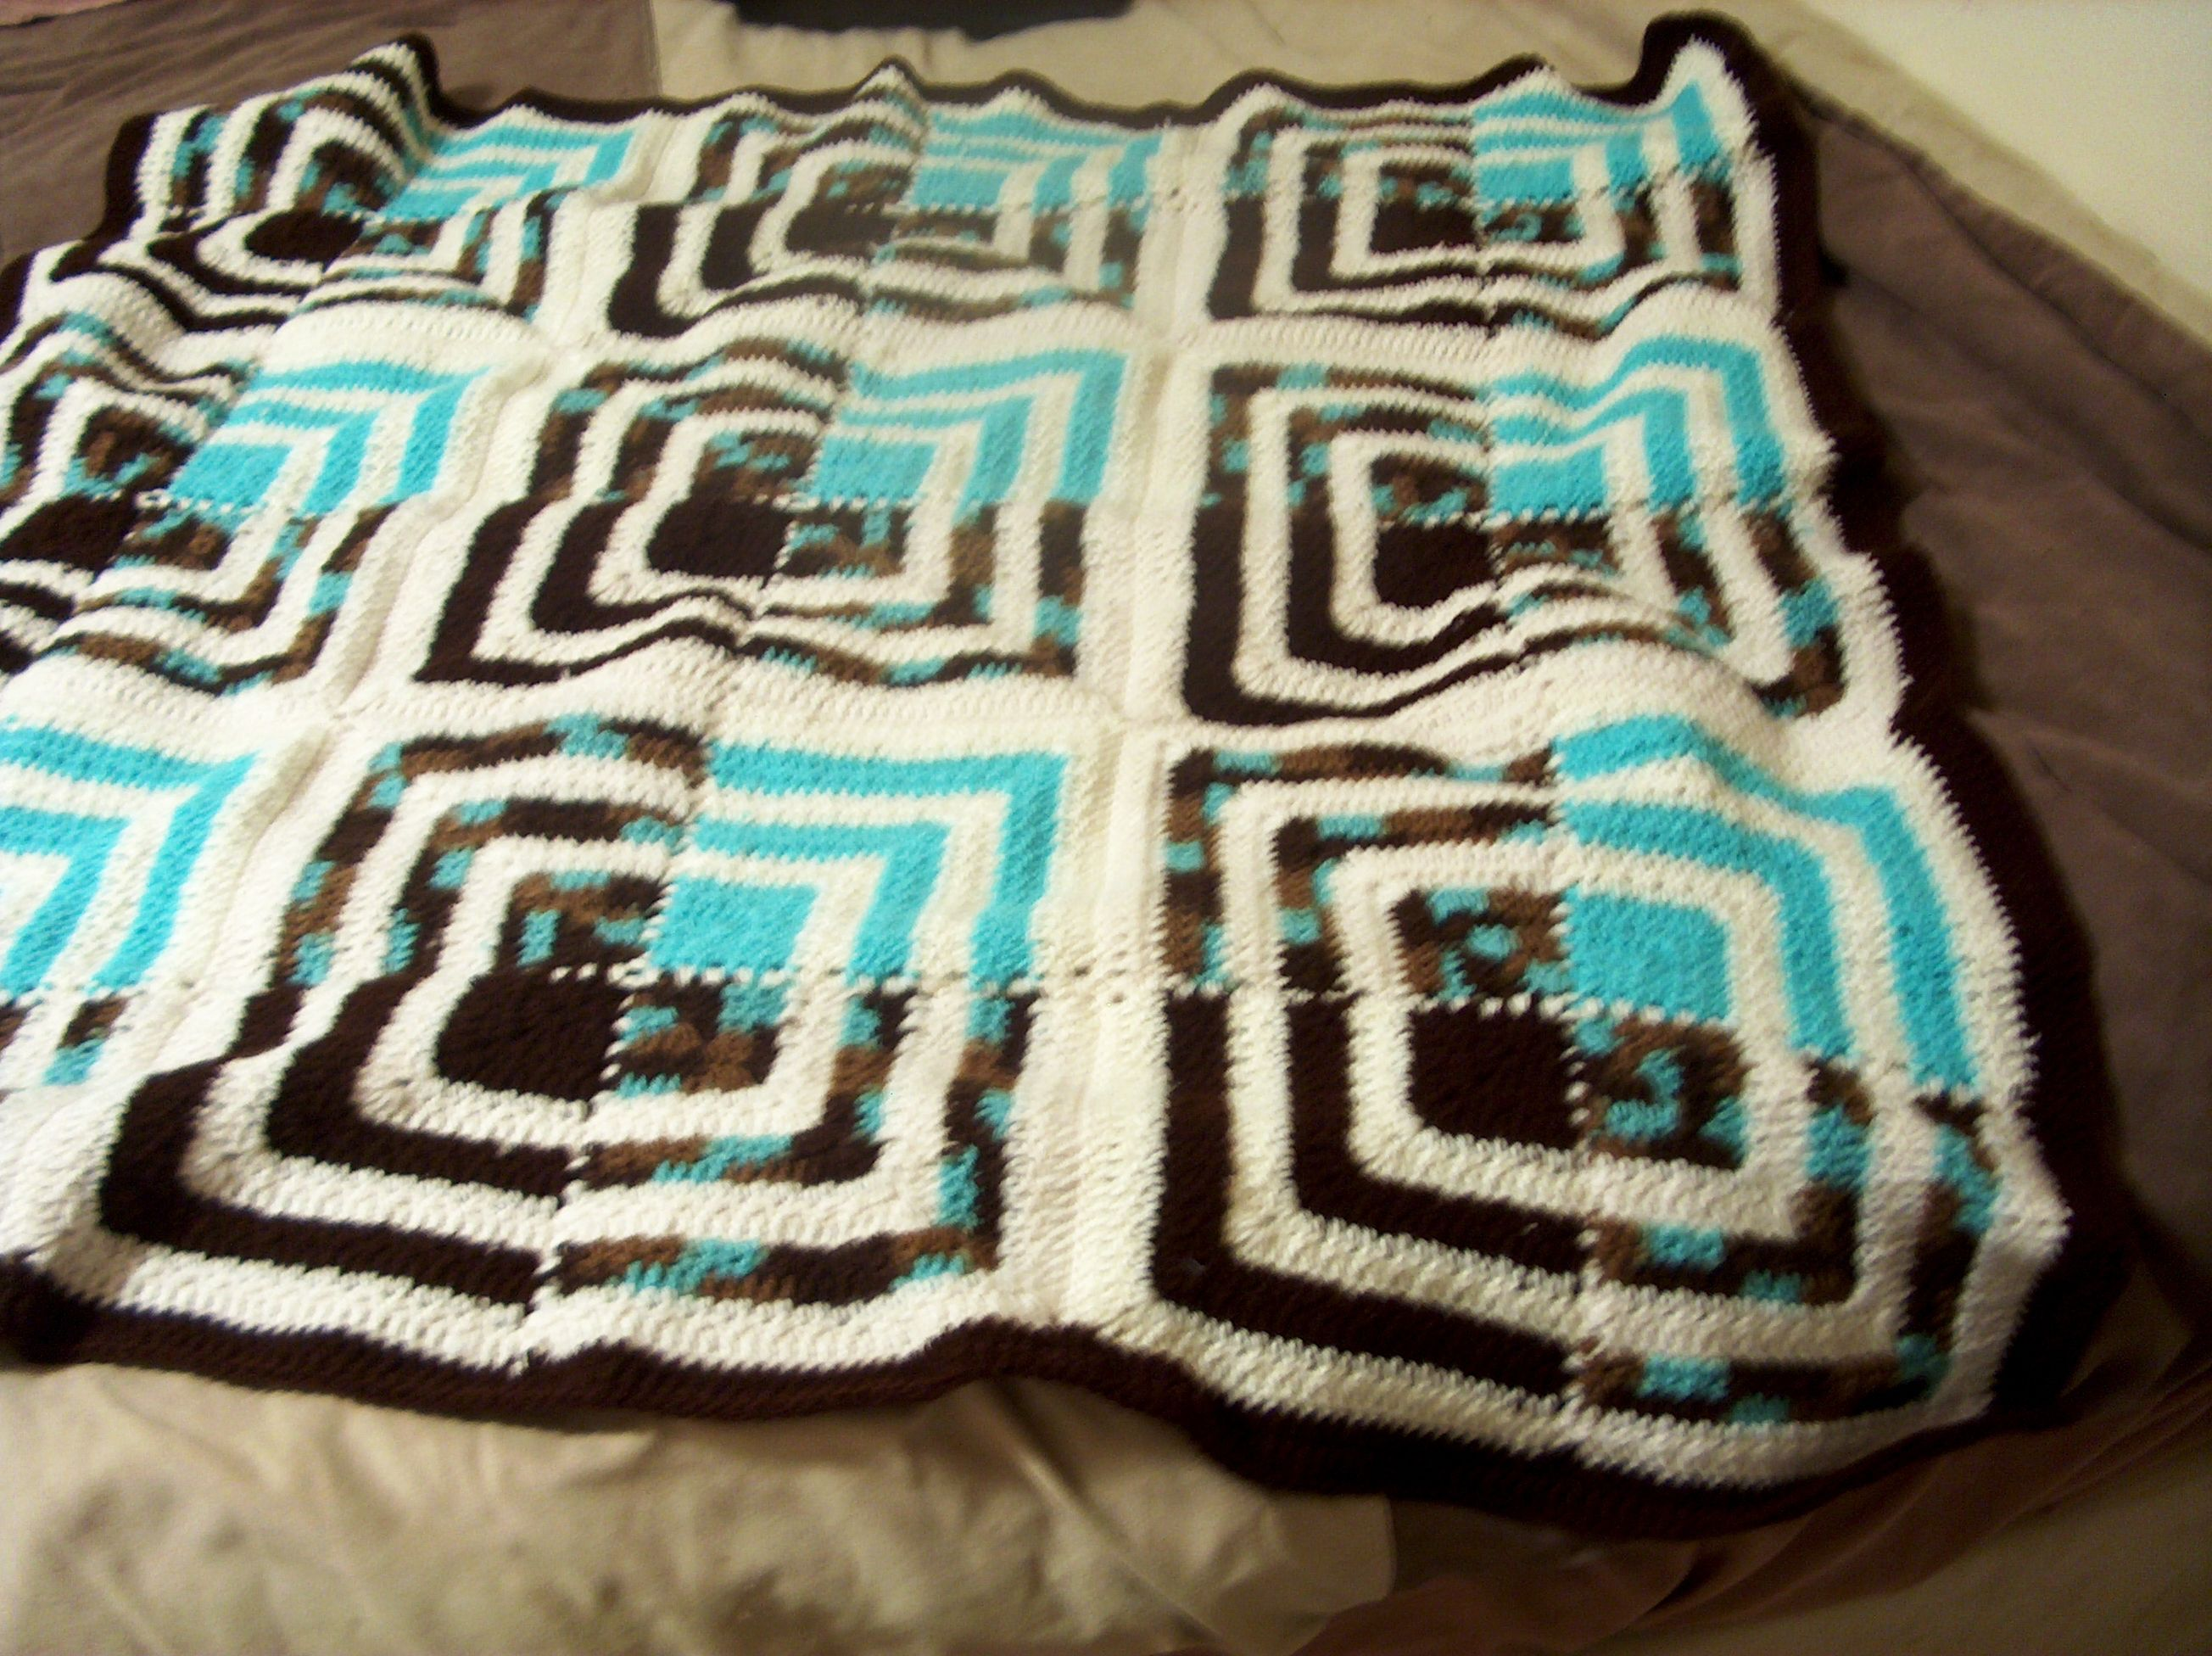 Rich squares pattern on redheart rich mitered crochet throw pattern on redheart rich mitered crochet throw bankloansurffo Gallery